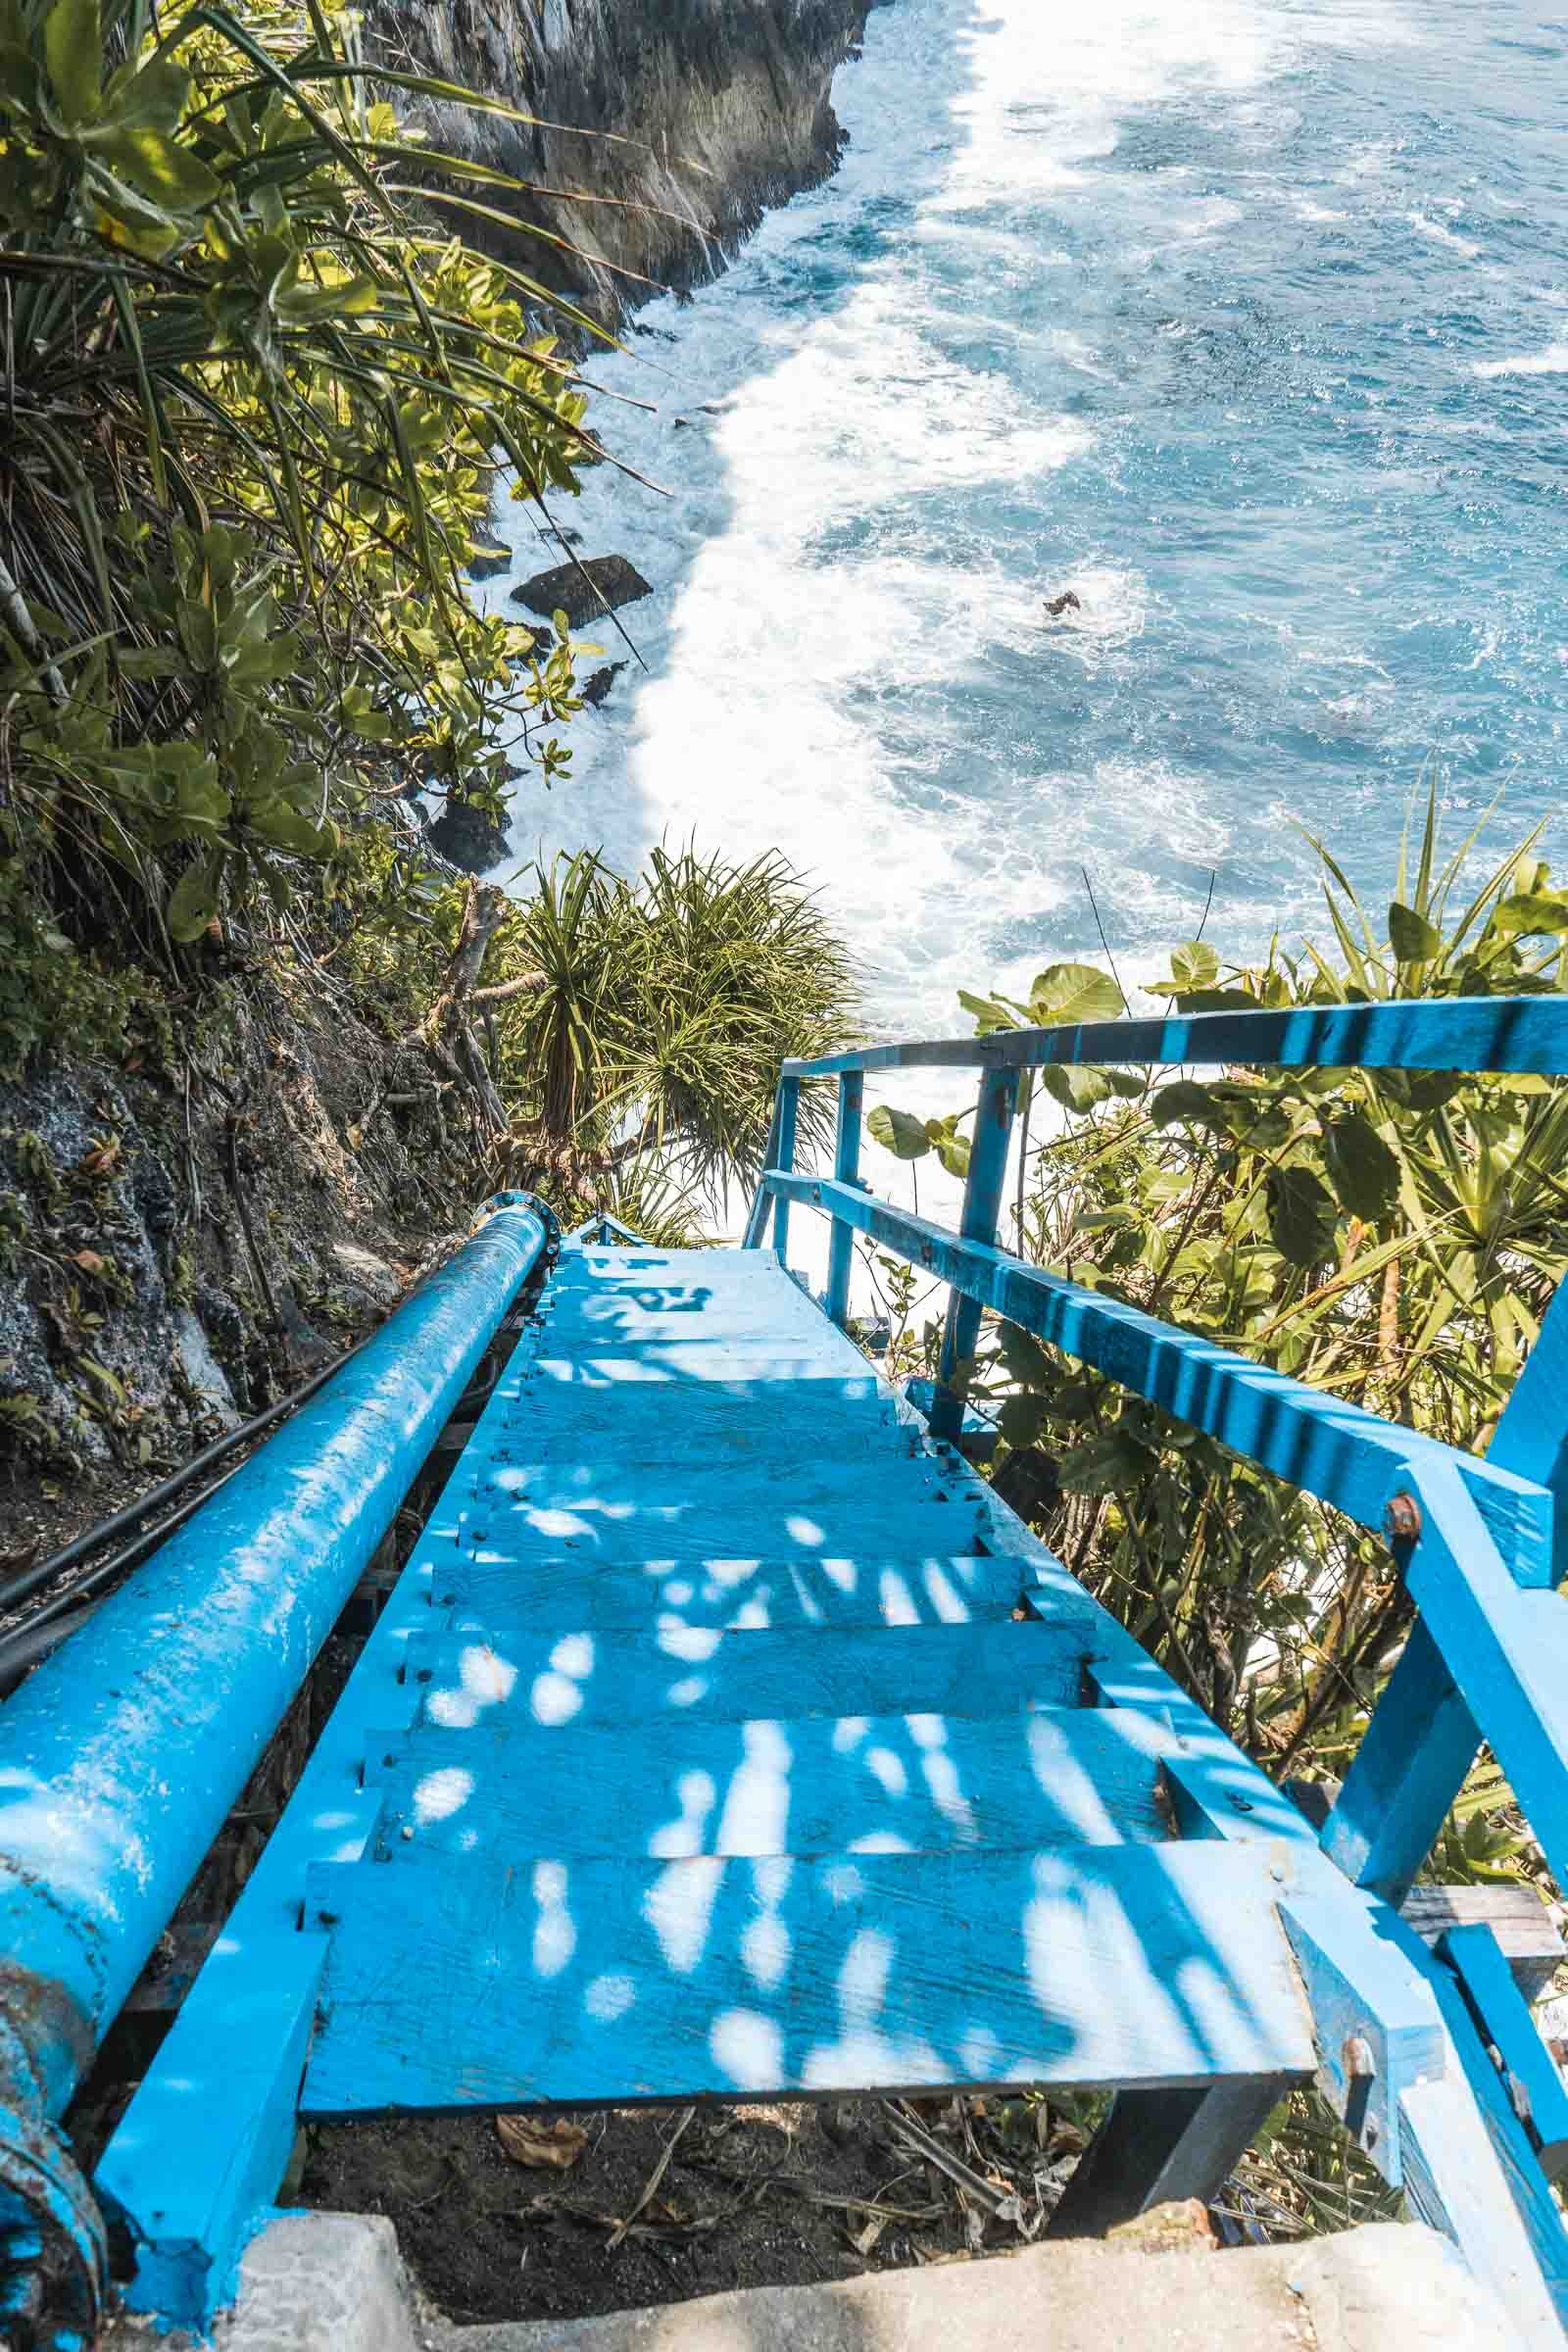 Blue stairway leading down to Peguyangan Waterfall, Nusa Penida